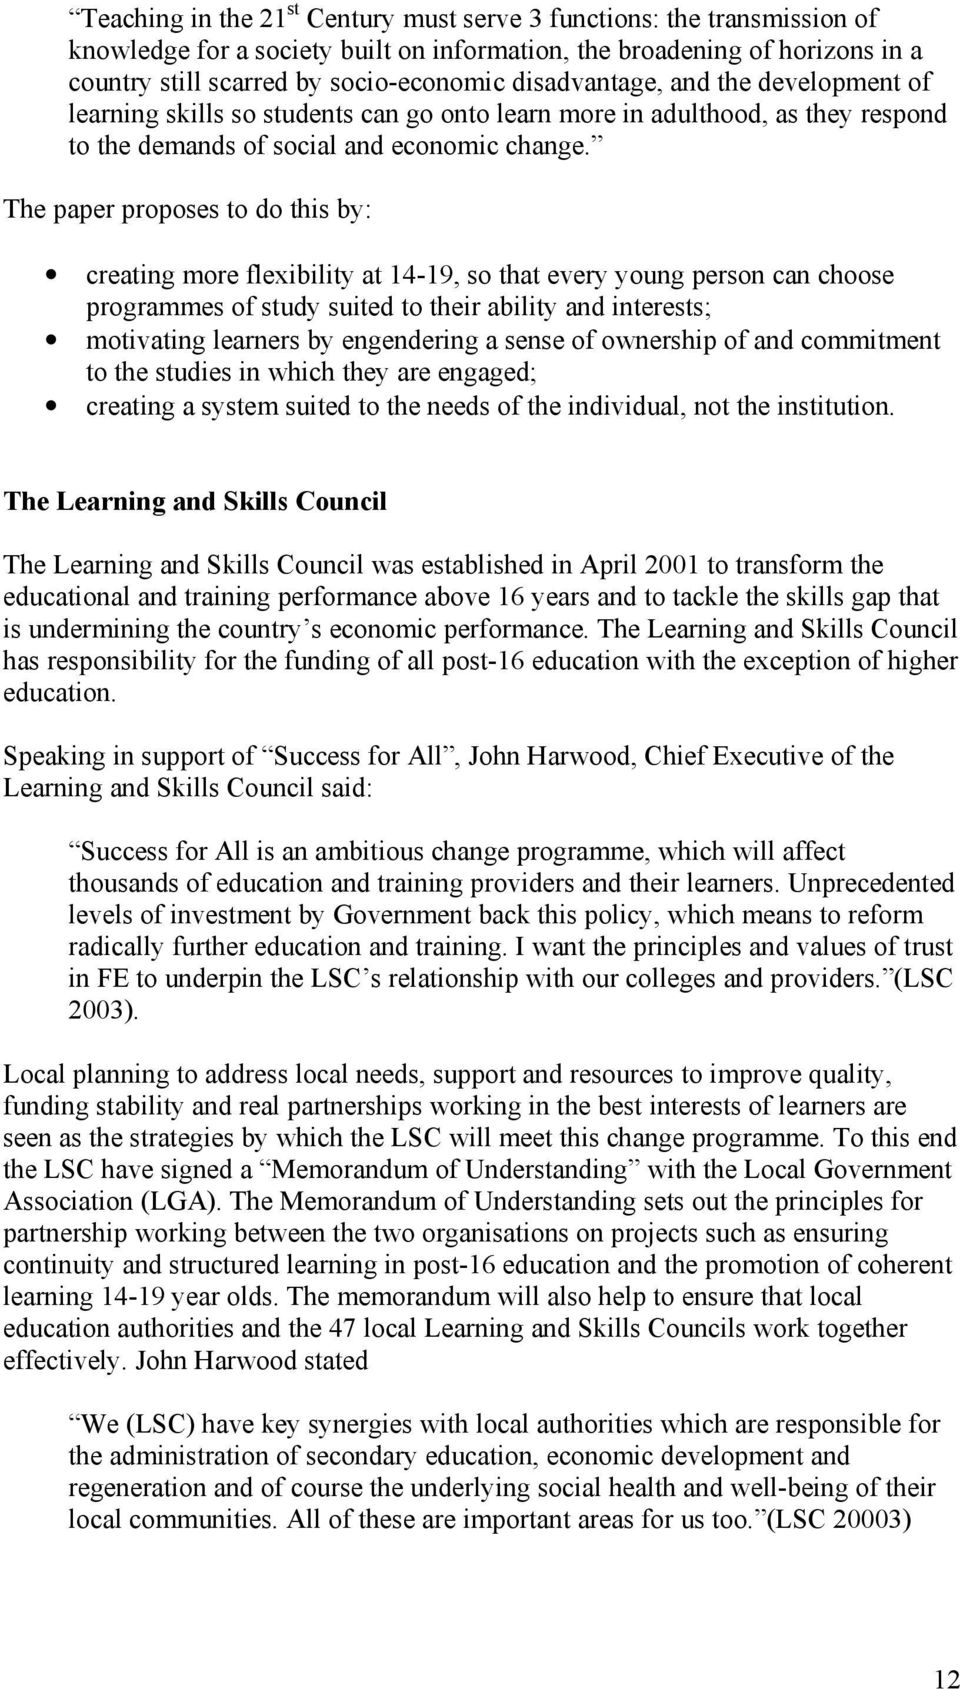 The paper proposes to do this by: creating more flexibility at 14-19, so that every young person can choose programmes of study suited to their ability and interests; motivating learners by